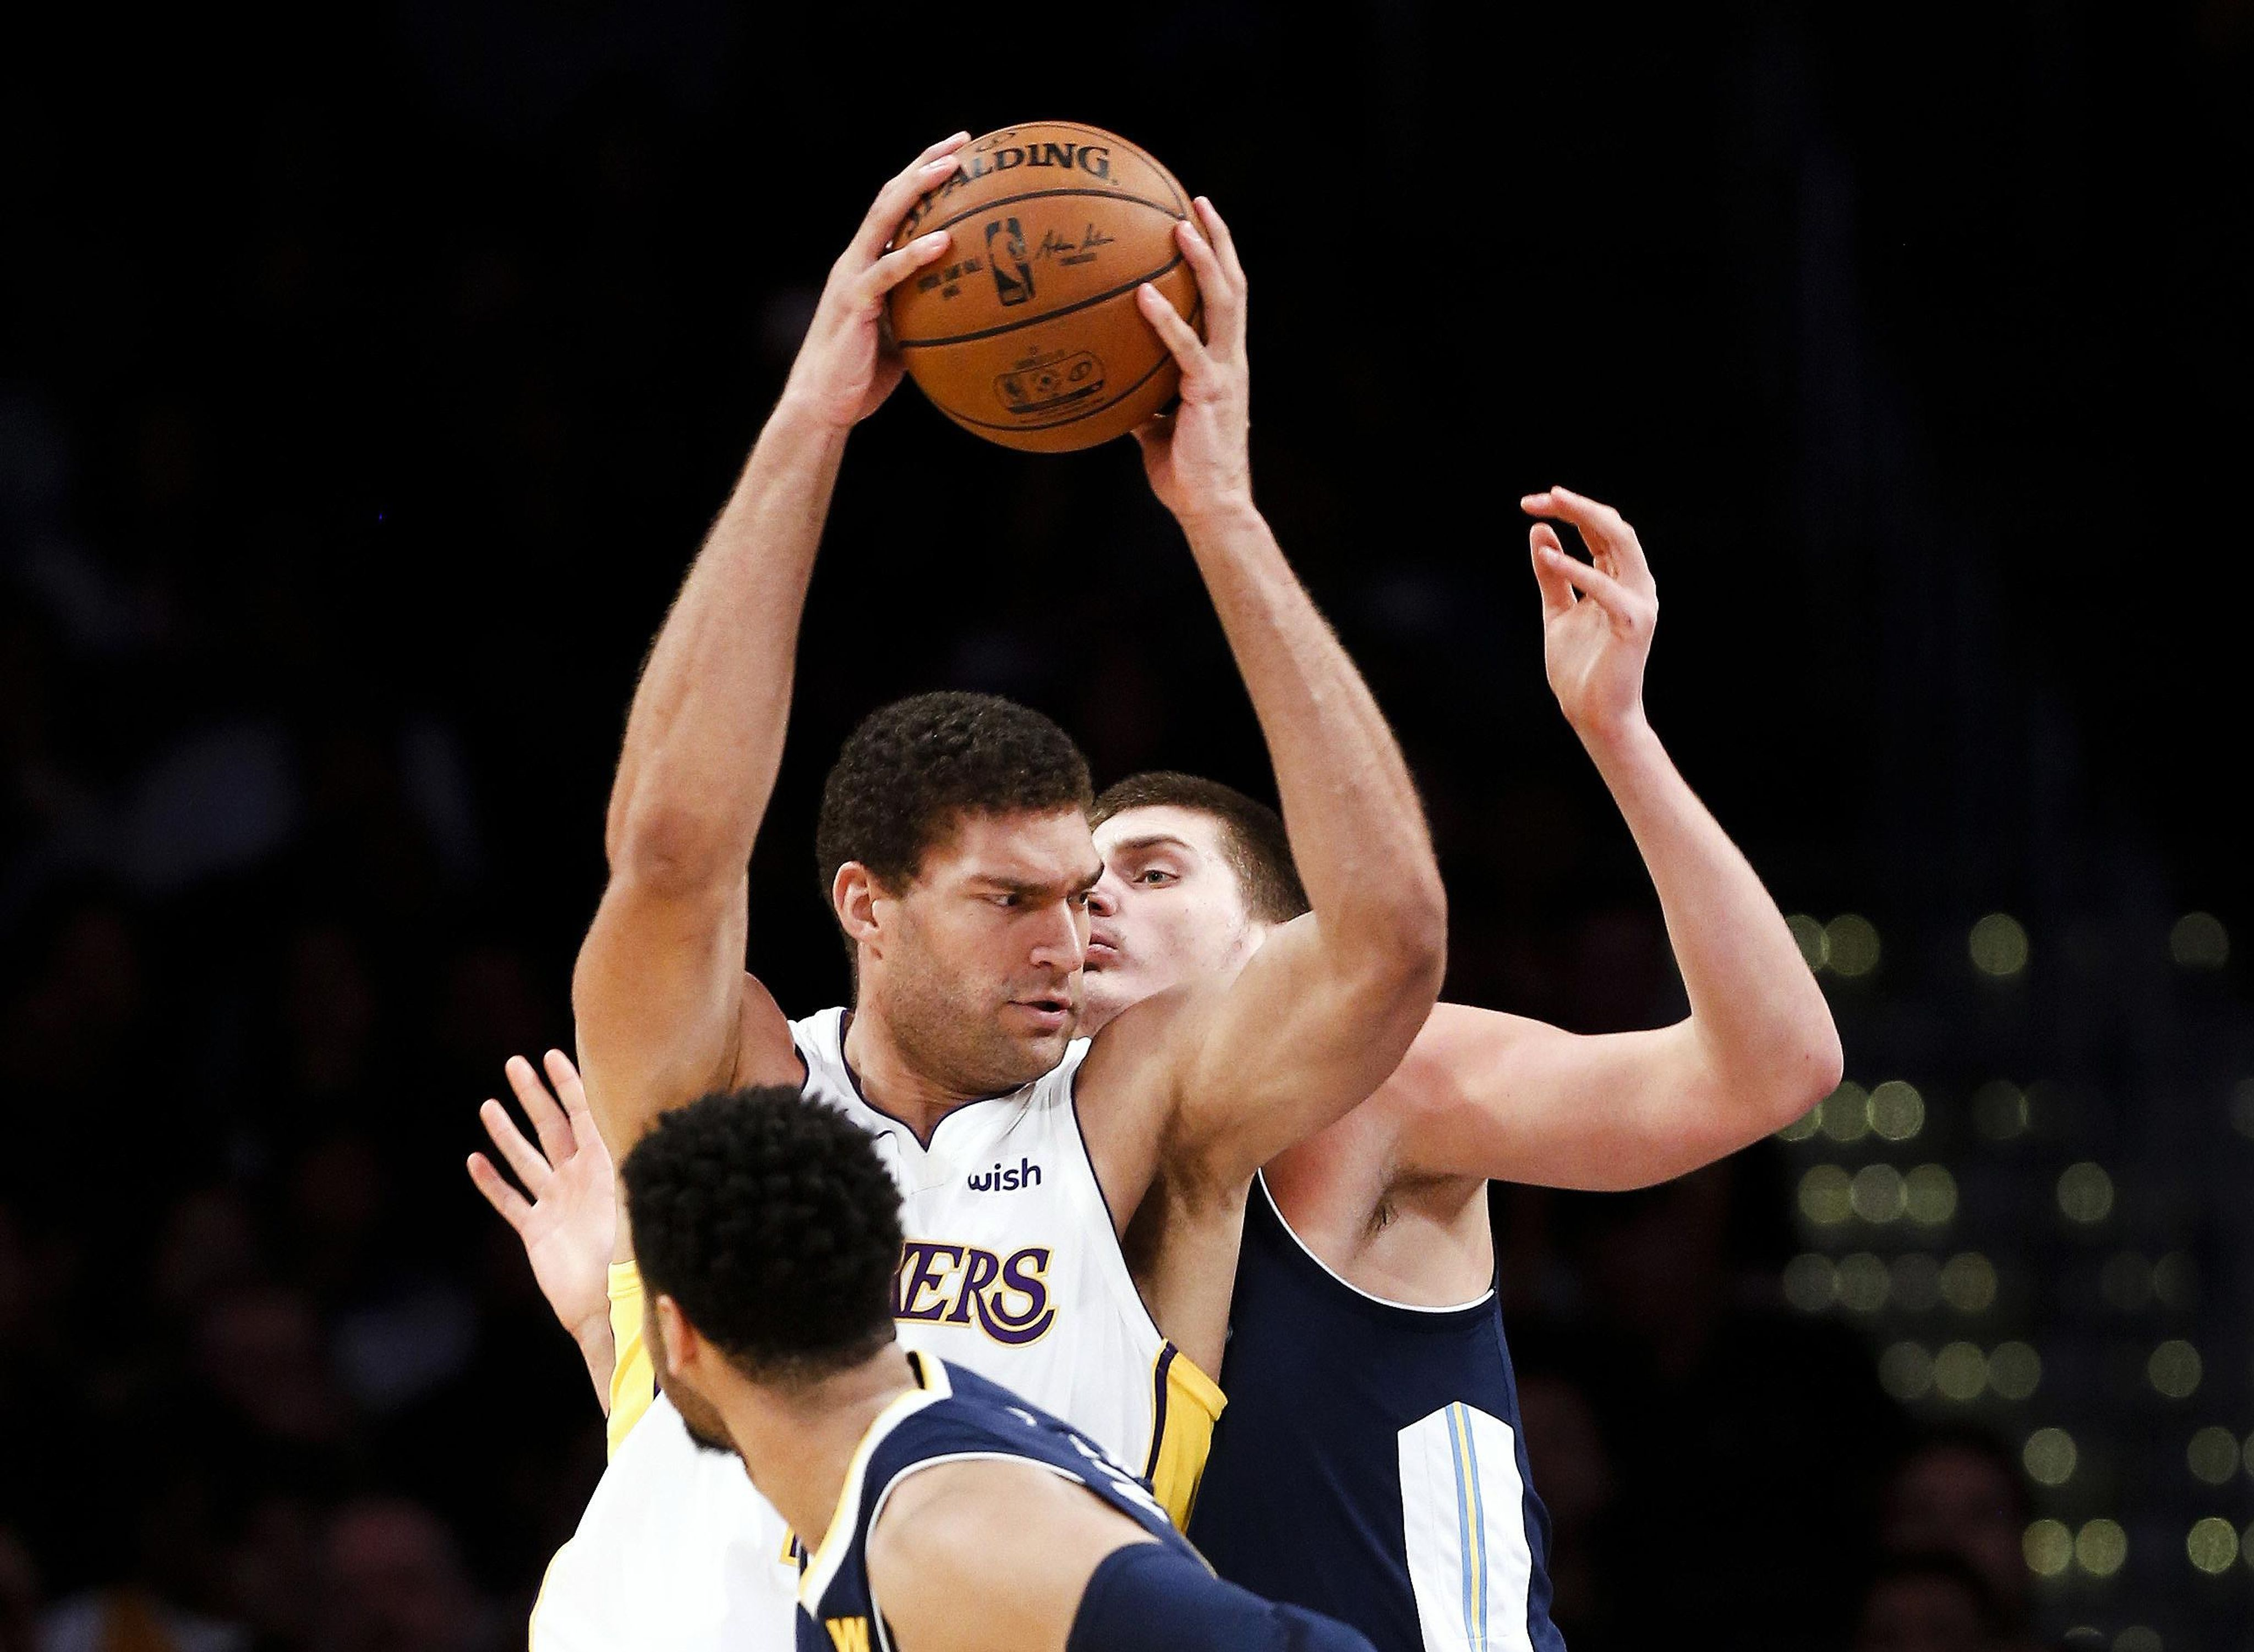 Nuggets_lakers_basketball_40374_s4096x3002